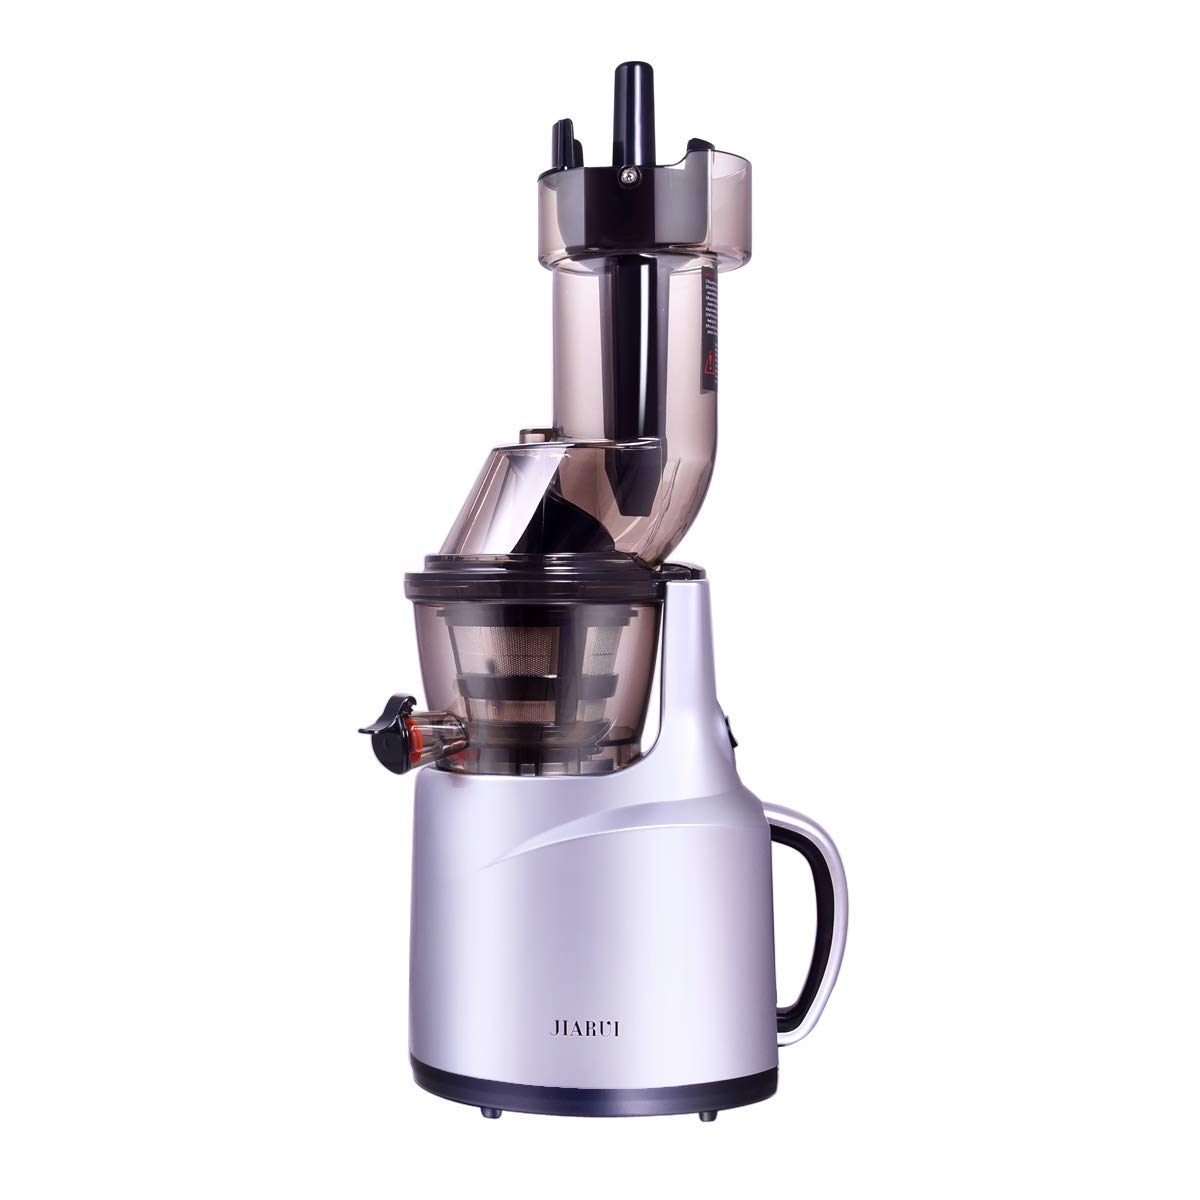 JIARUI 82MM Wide Chute Quite Slow Masticating Vertical Cold Press Juicer, Fruits & Vegetable Juice Extractor (240W AC Motor, 45RPM, BPA Free), 20.9'' x 10.2'' x 6.3'', Silver